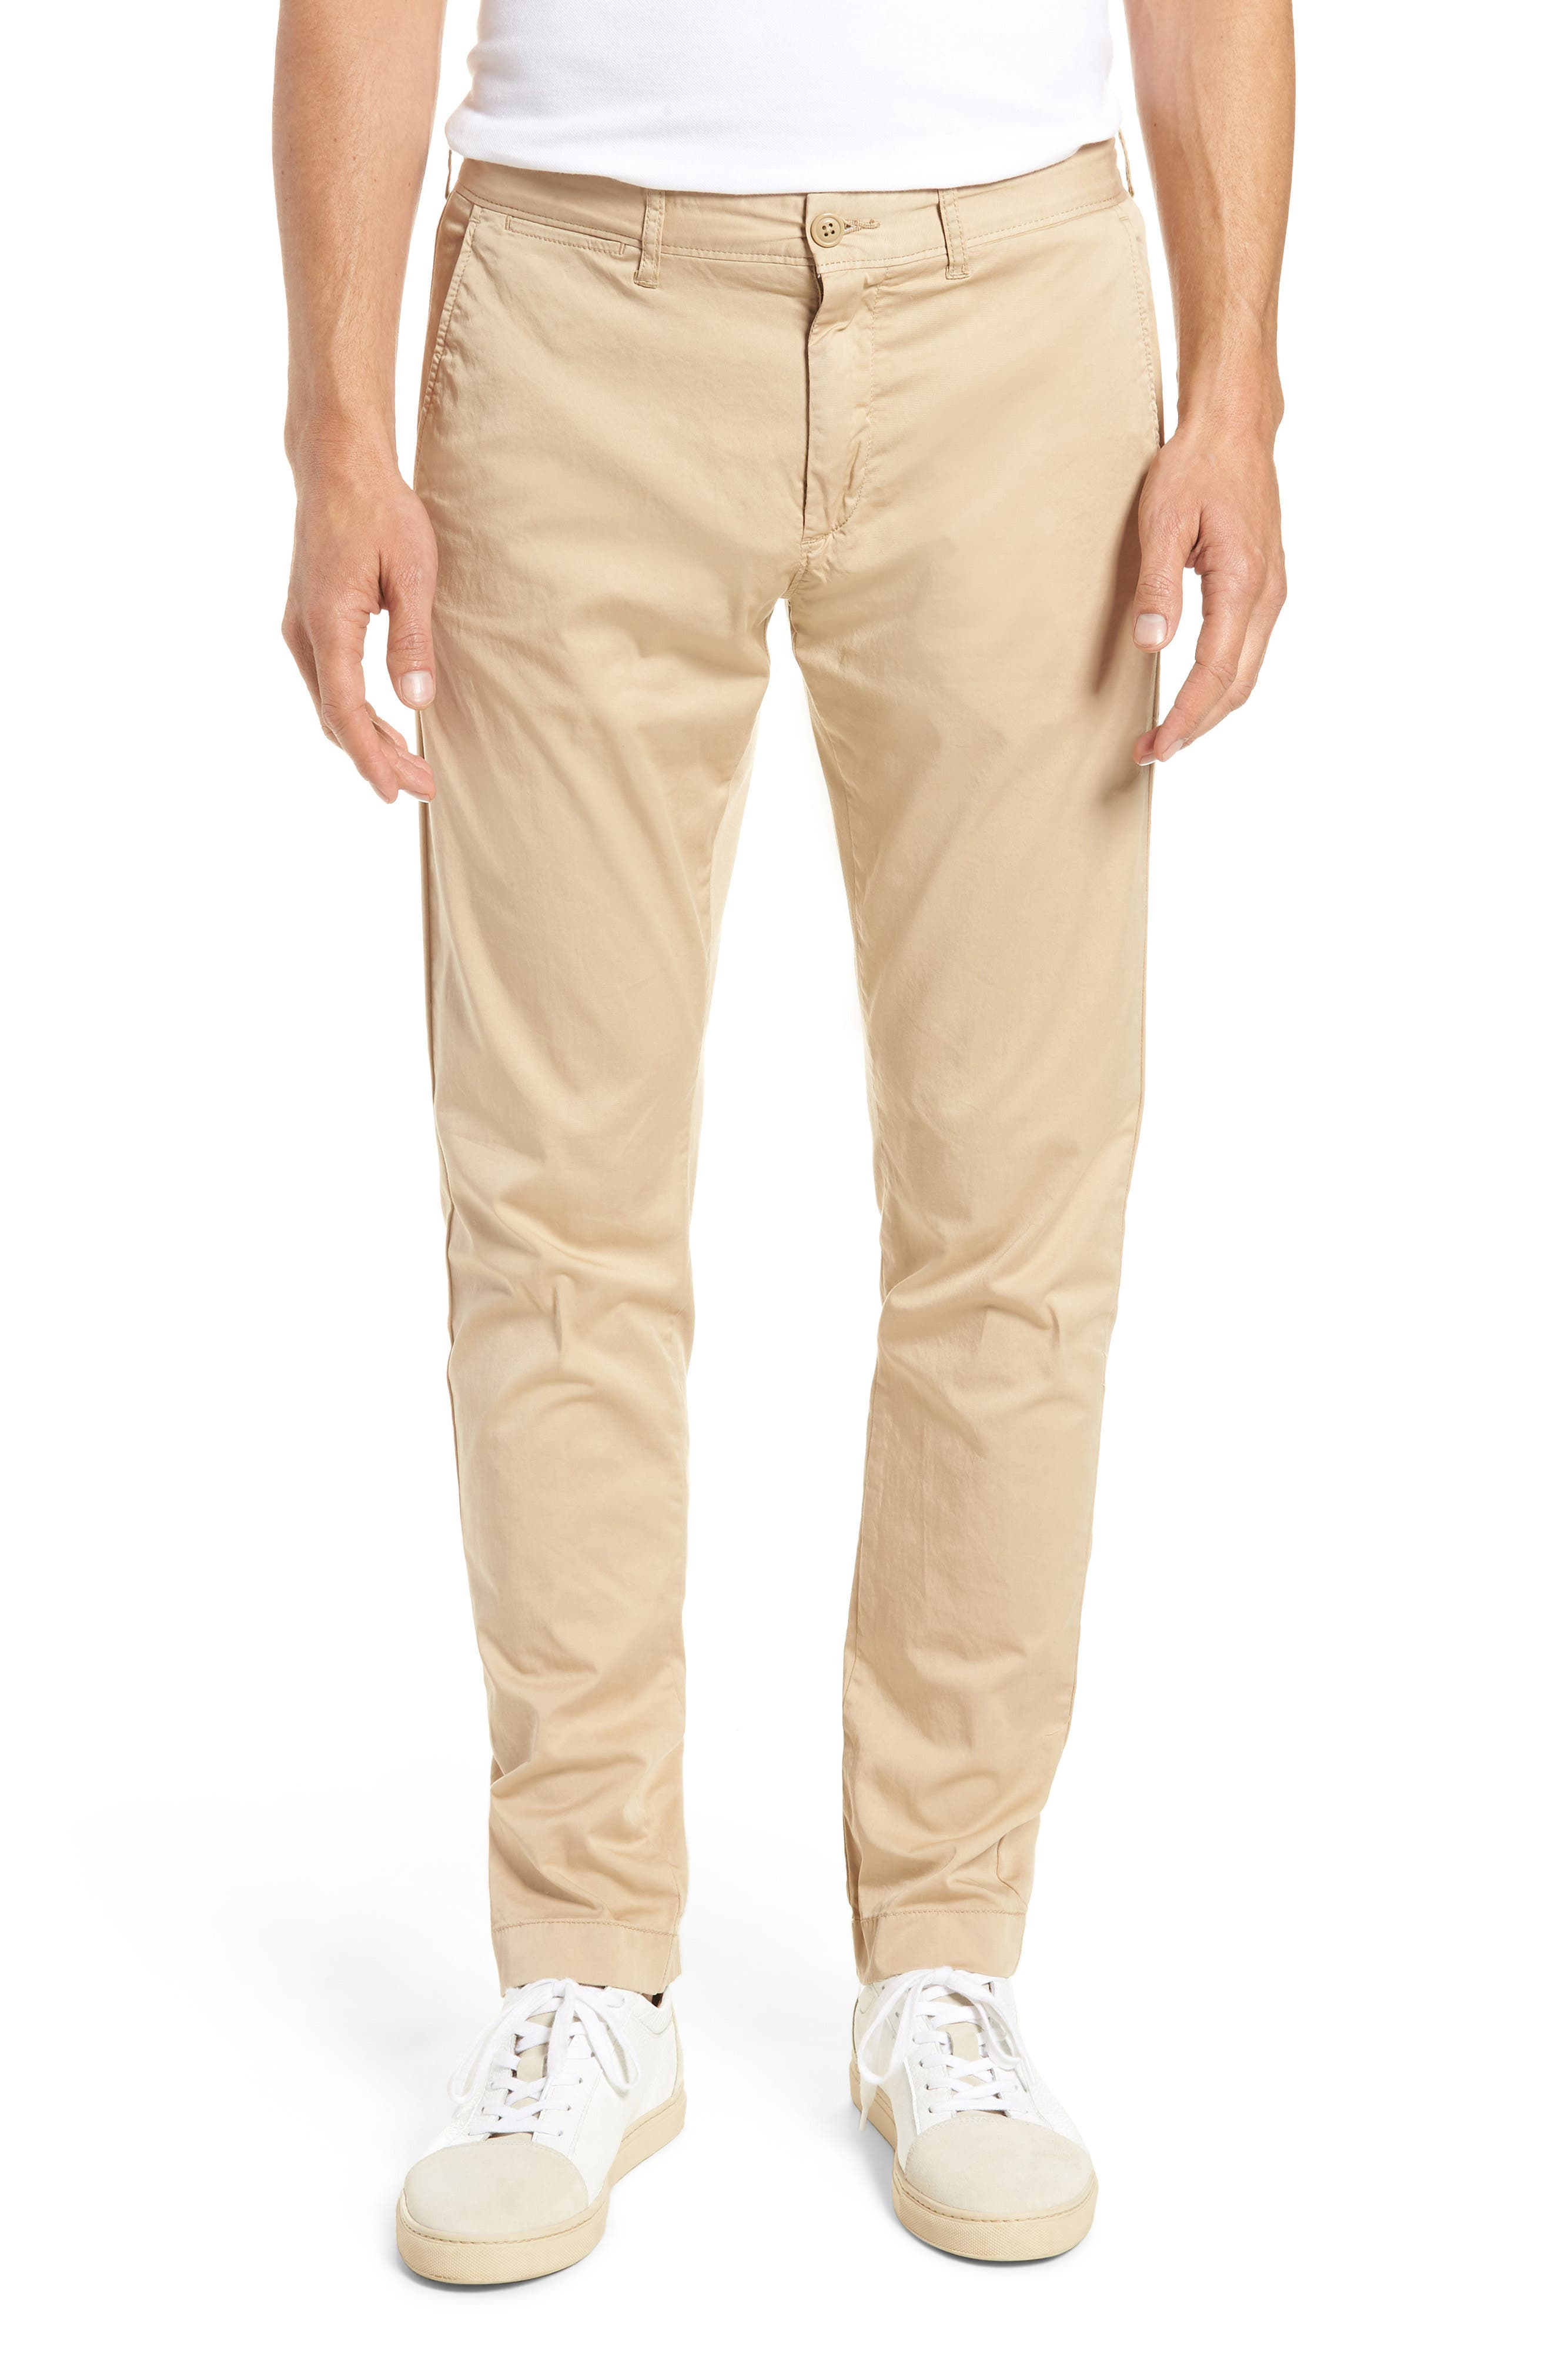 J.Crew Slim Fit Garment Dyed Stretch Chinos by J. Crew